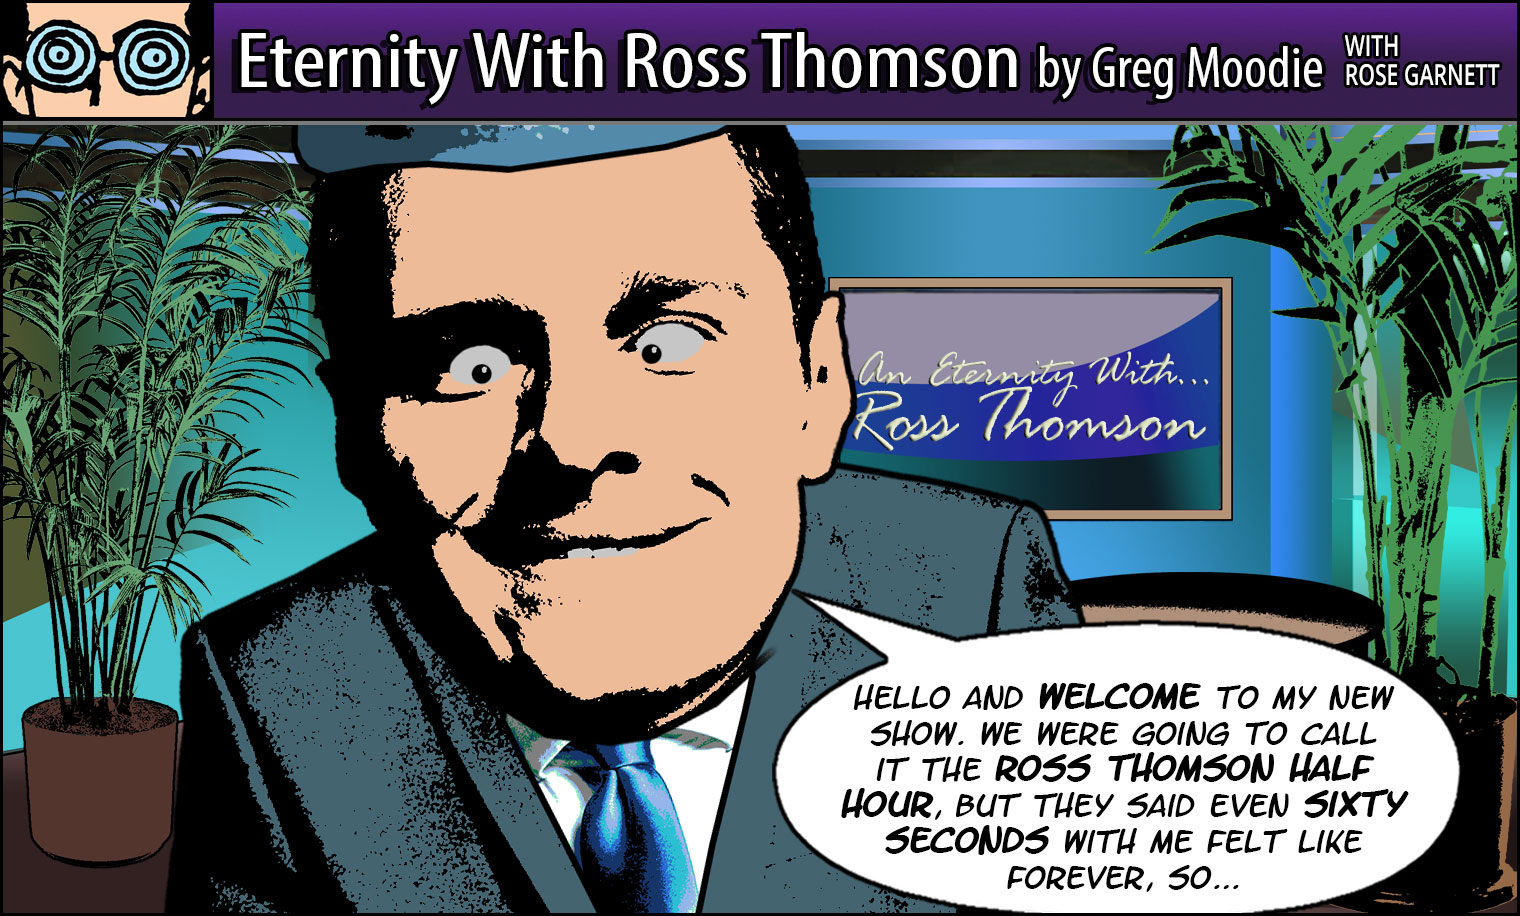 Eternity With Ross Thomson